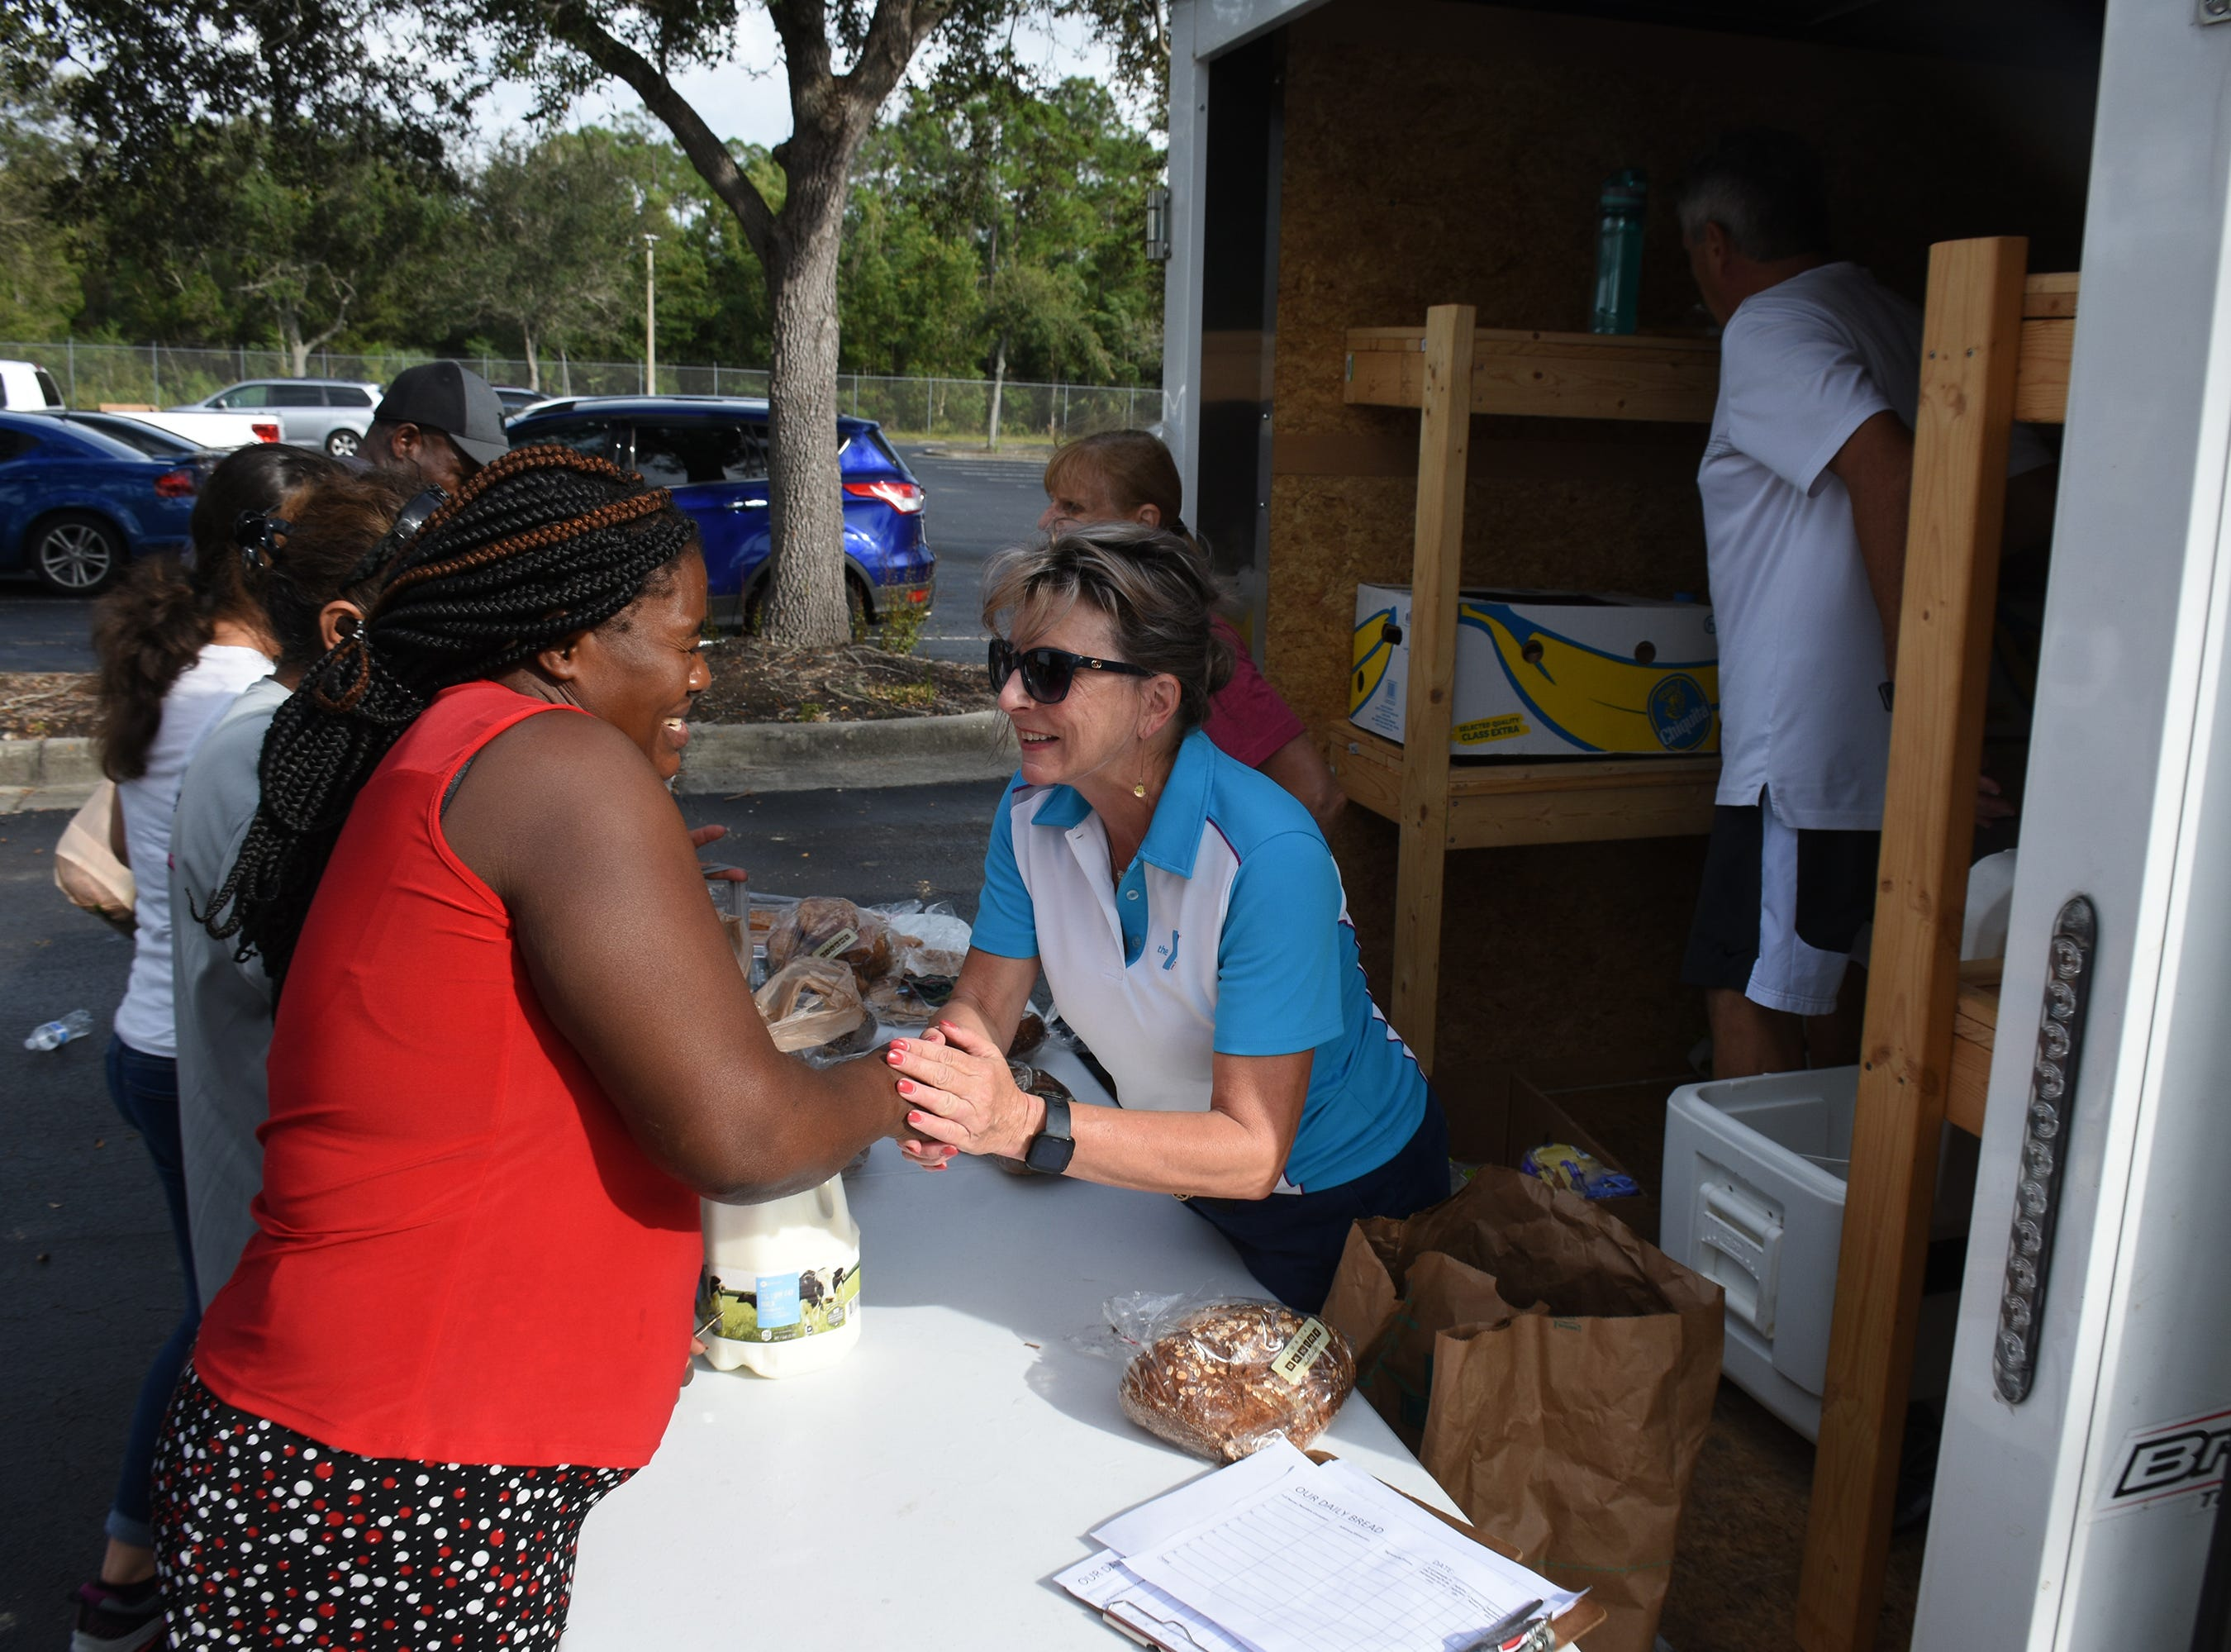 Allyson Richards, right, greets a client and asks about her family. A group of Marco Island volunteers conducts a food pantry Friday afternoon at Manatee Middle School.